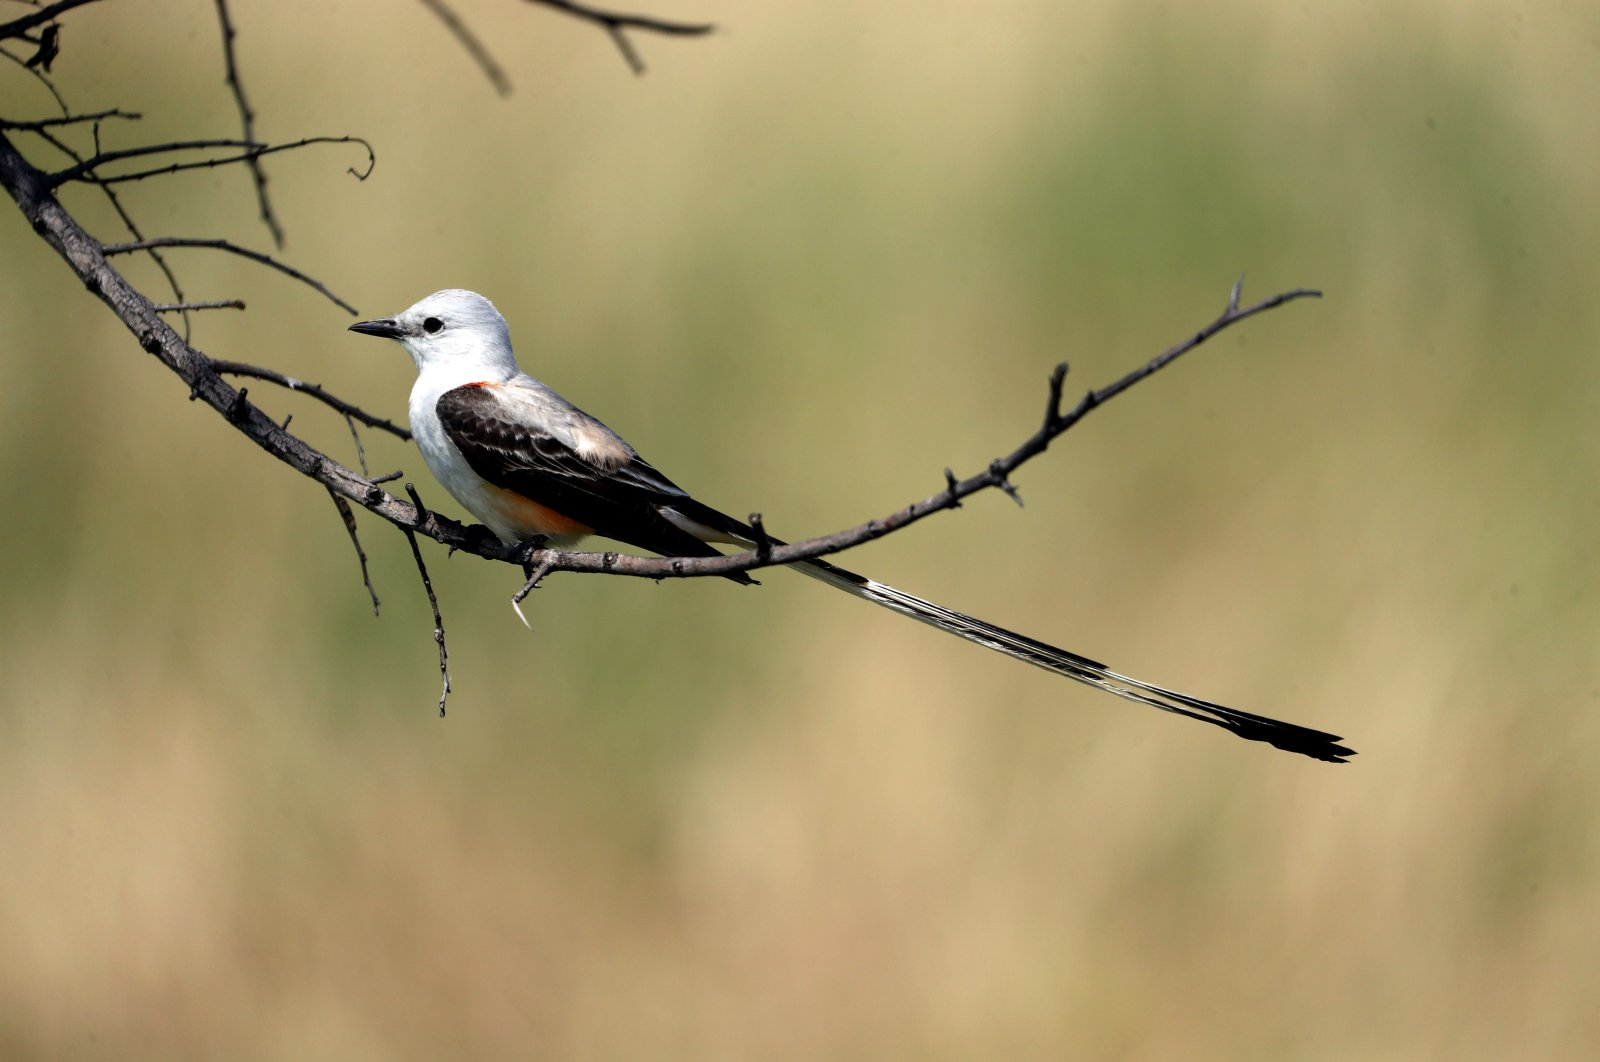 A scissor-tailed flycatcher bird sits on a tree branch during the first round of the Energy Producers, Inc. Texas Women's Open in The Colony, Texas, June 02, 2020 . (AFP Photo)